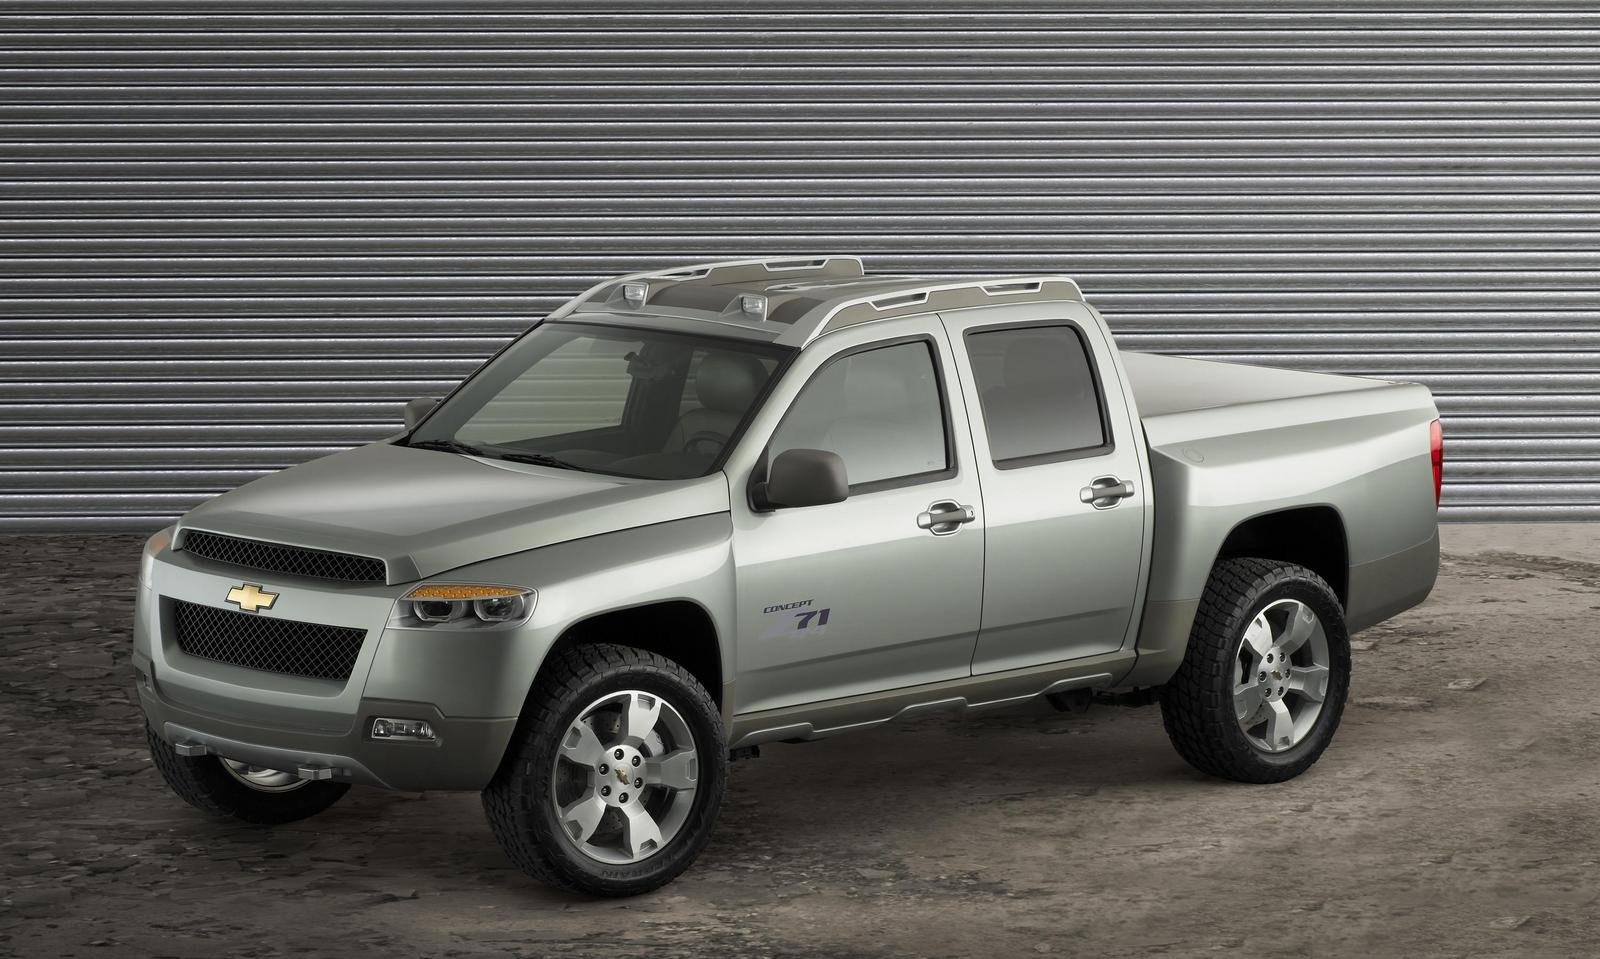 2008 Colorado Z71 >> 2007 Chevrolet Colorado Crew Cab Z71 Plus Review - Top Speed